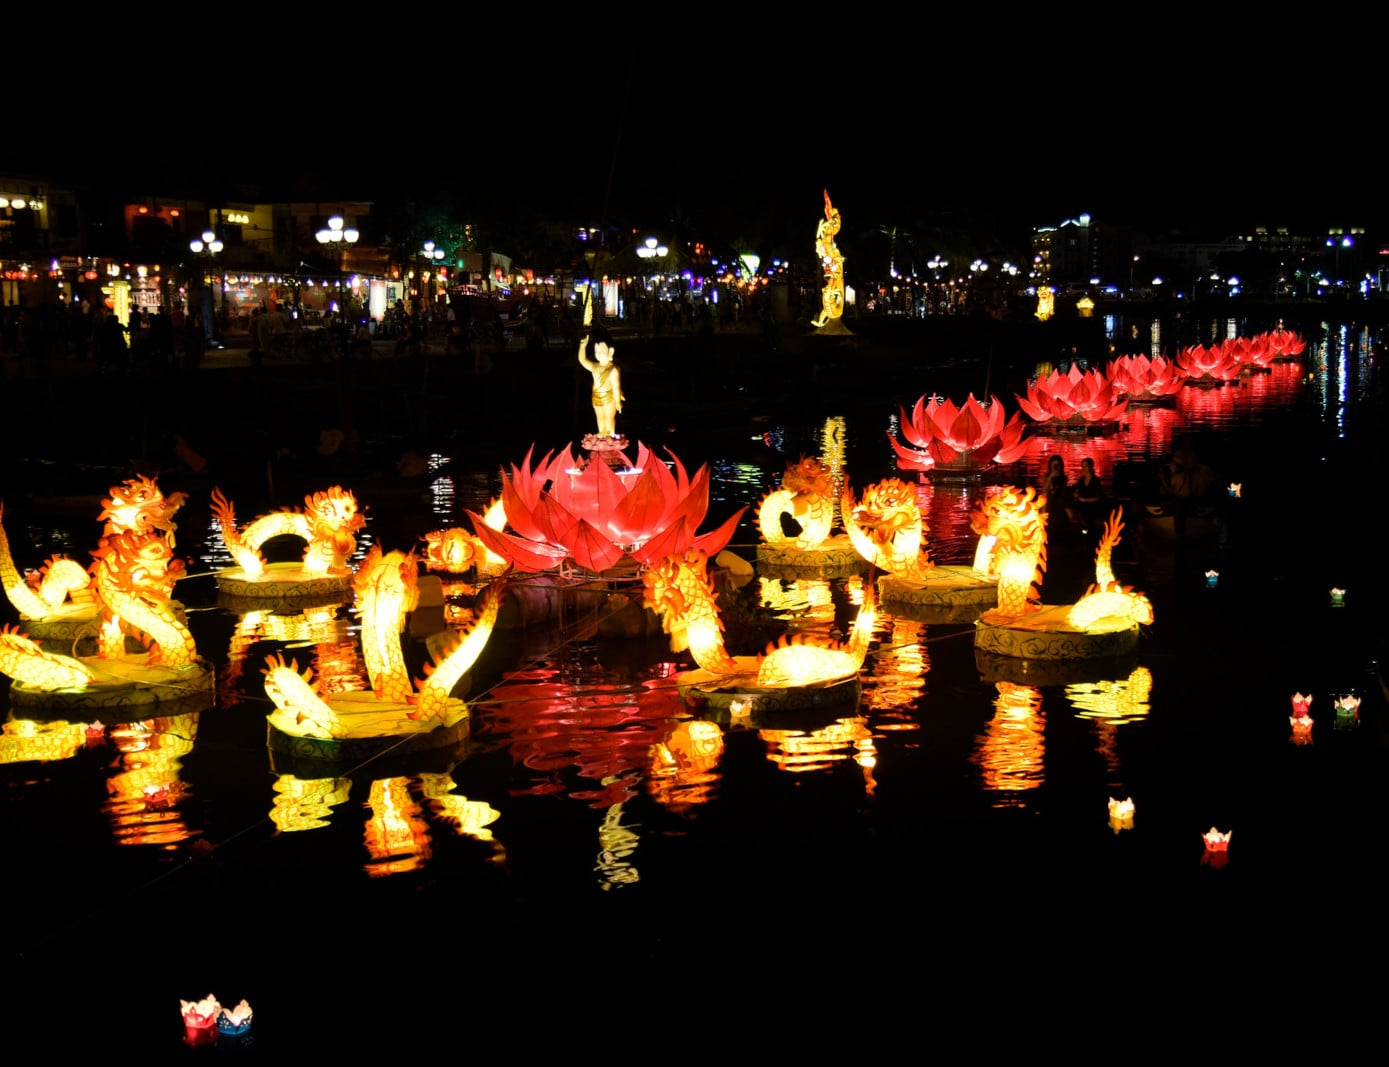 Image of floating lanterns on the water in Old Town Hoi An as part of the lantern festival in Vietnam